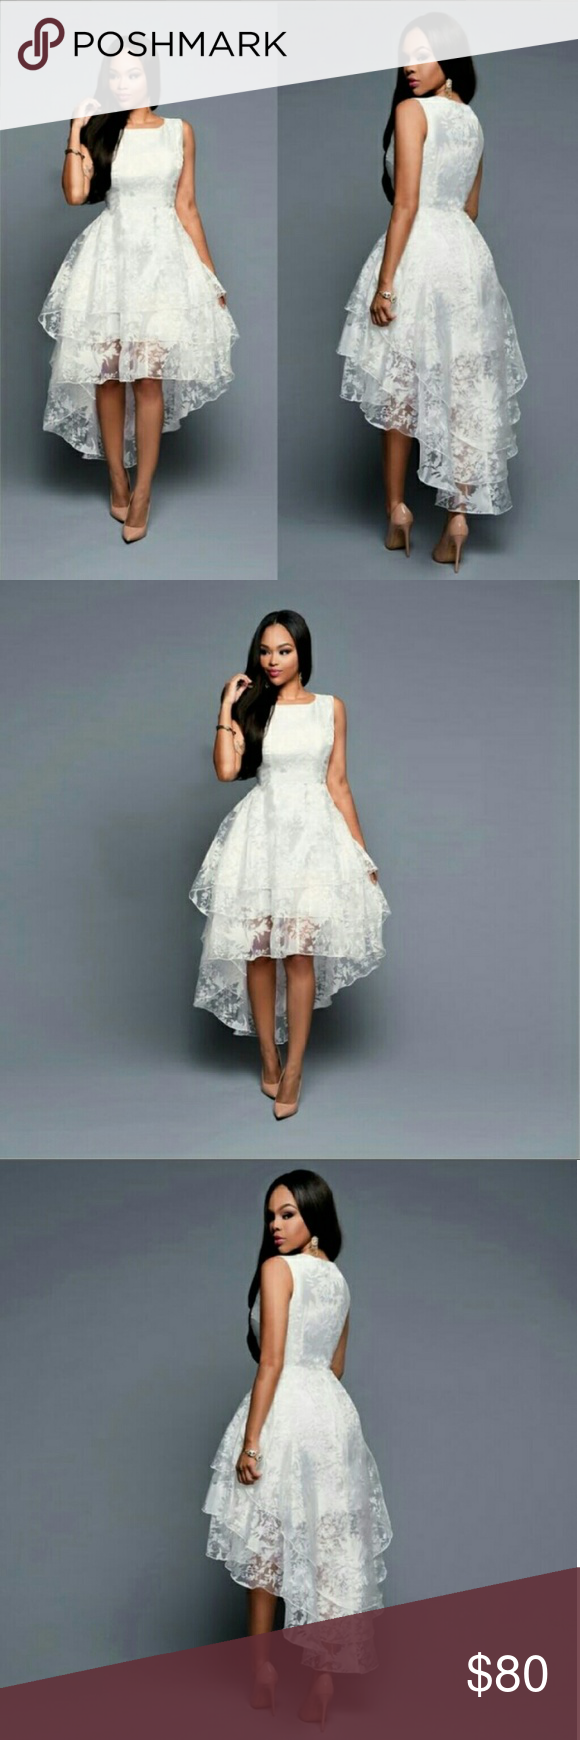 Sleeveless three layer lace gown ball,party,elegan New very cute white lace size LG tag on dress just came in yi-hi-jia Dresses Wedding